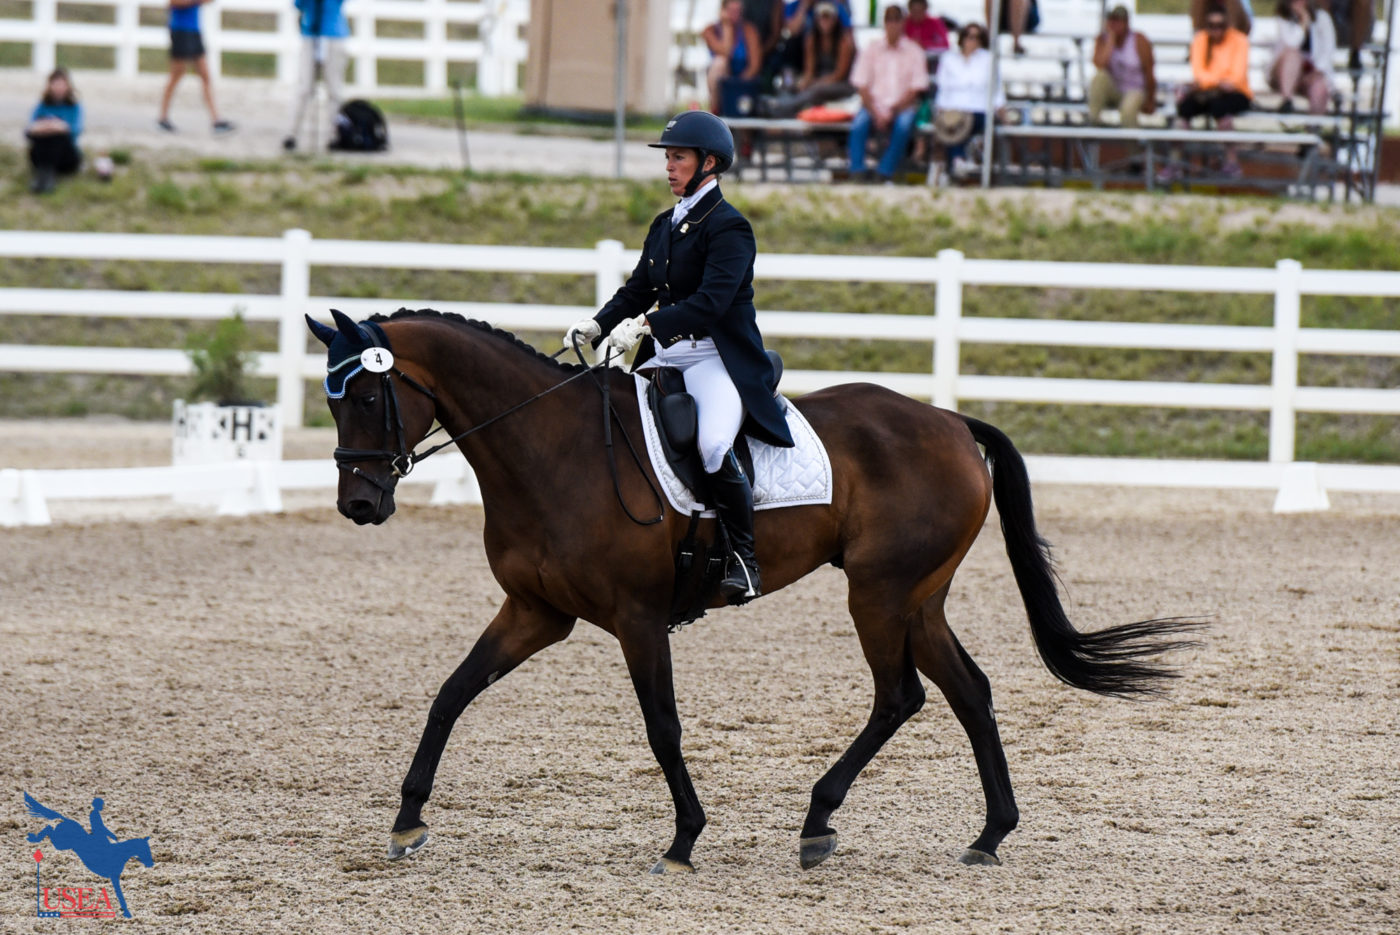 4th - Ellen Doughty-Hume and Sir Oberon - 35.2